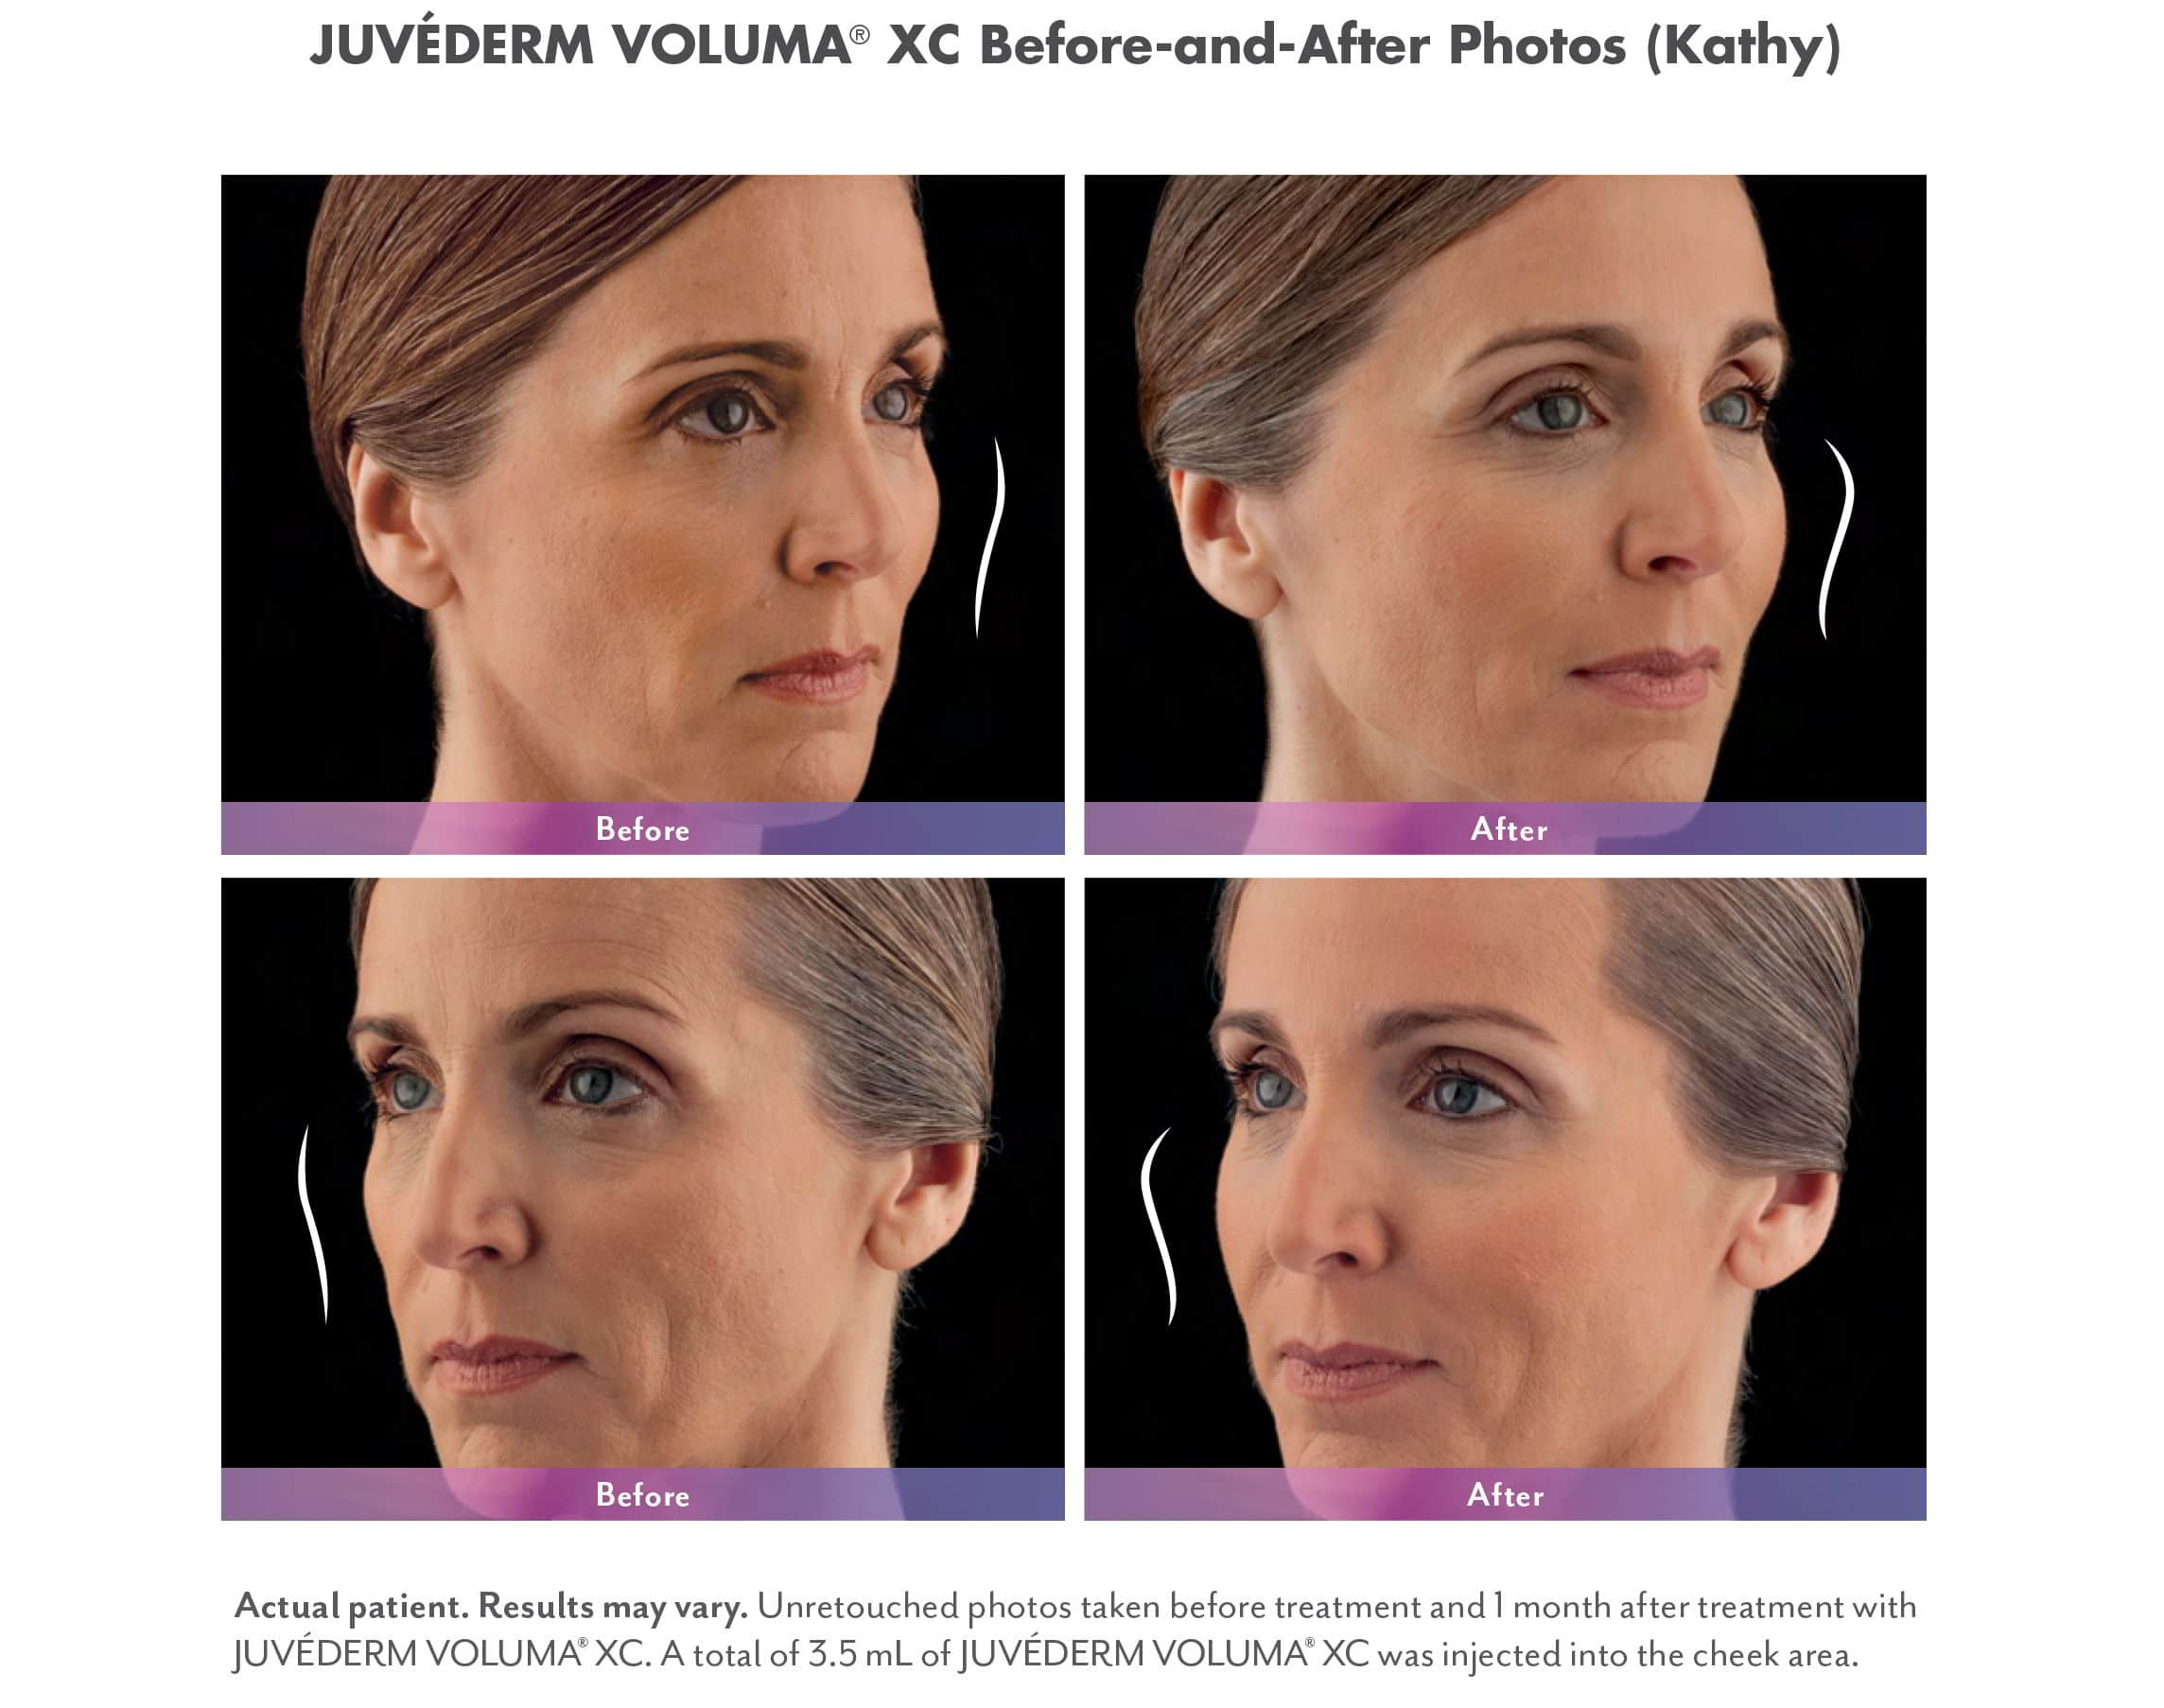 Juvederm Voluma XC Fillers Before & Afters